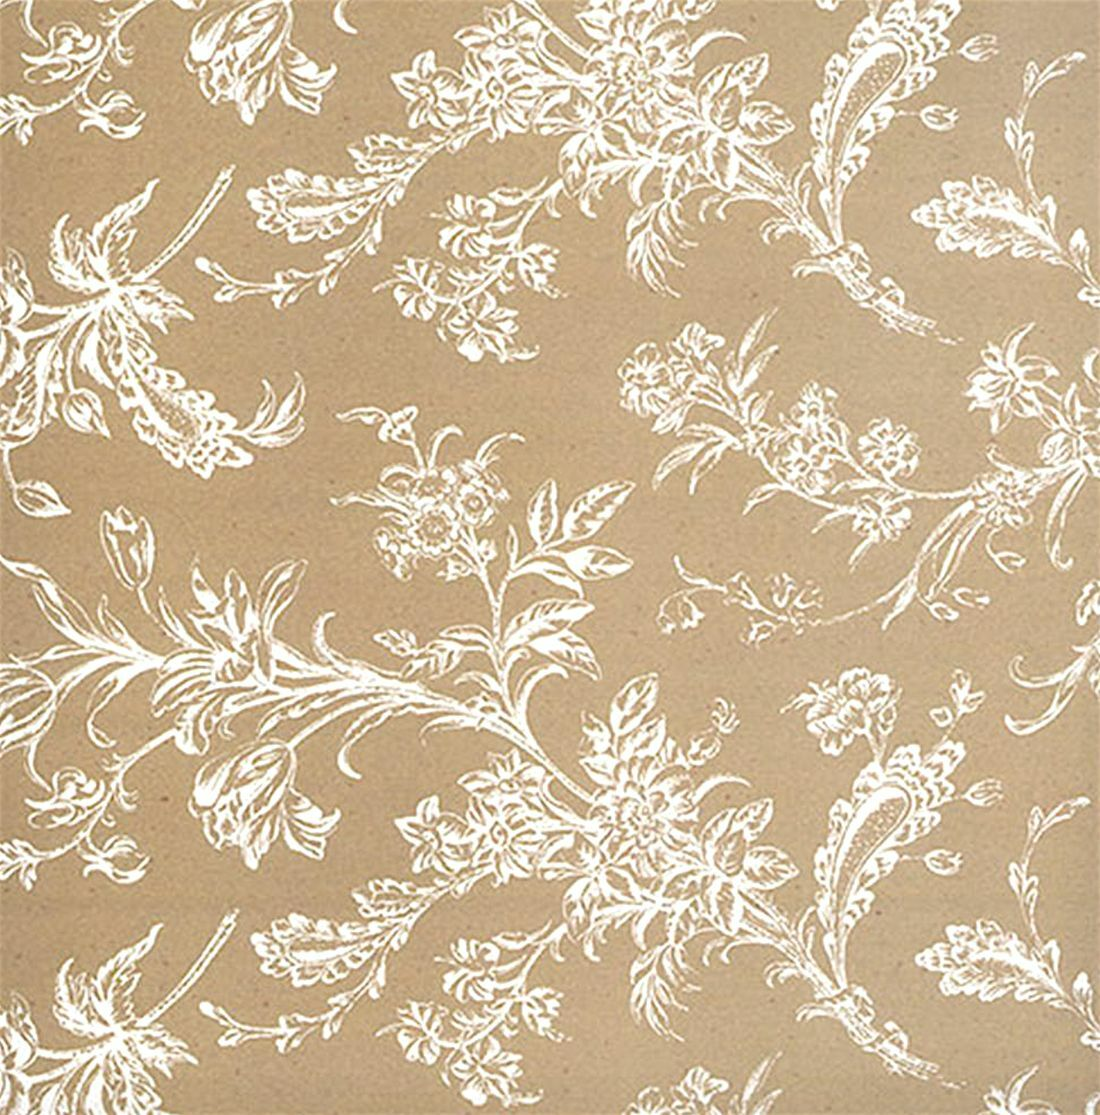 White Lace Flowers Gift Wrap Tissue Paper 10 Printed Patterned